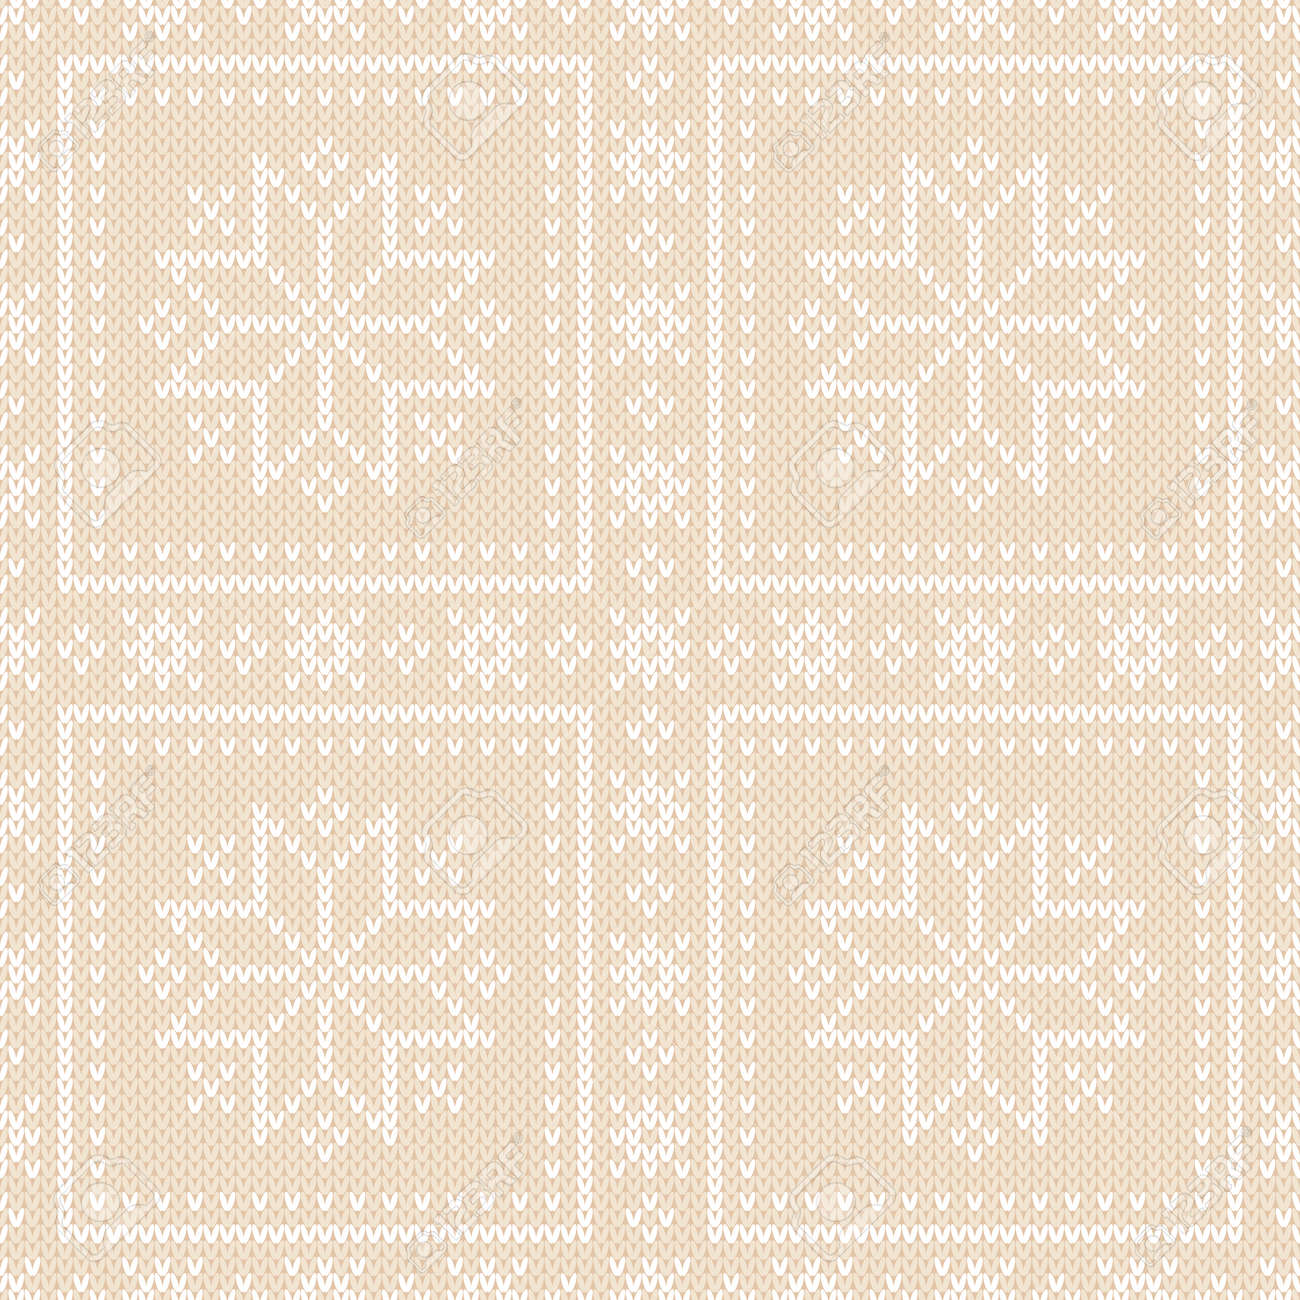 Winter Holiday Seamless Knitted Pattern With Snowflakes. Wool ...